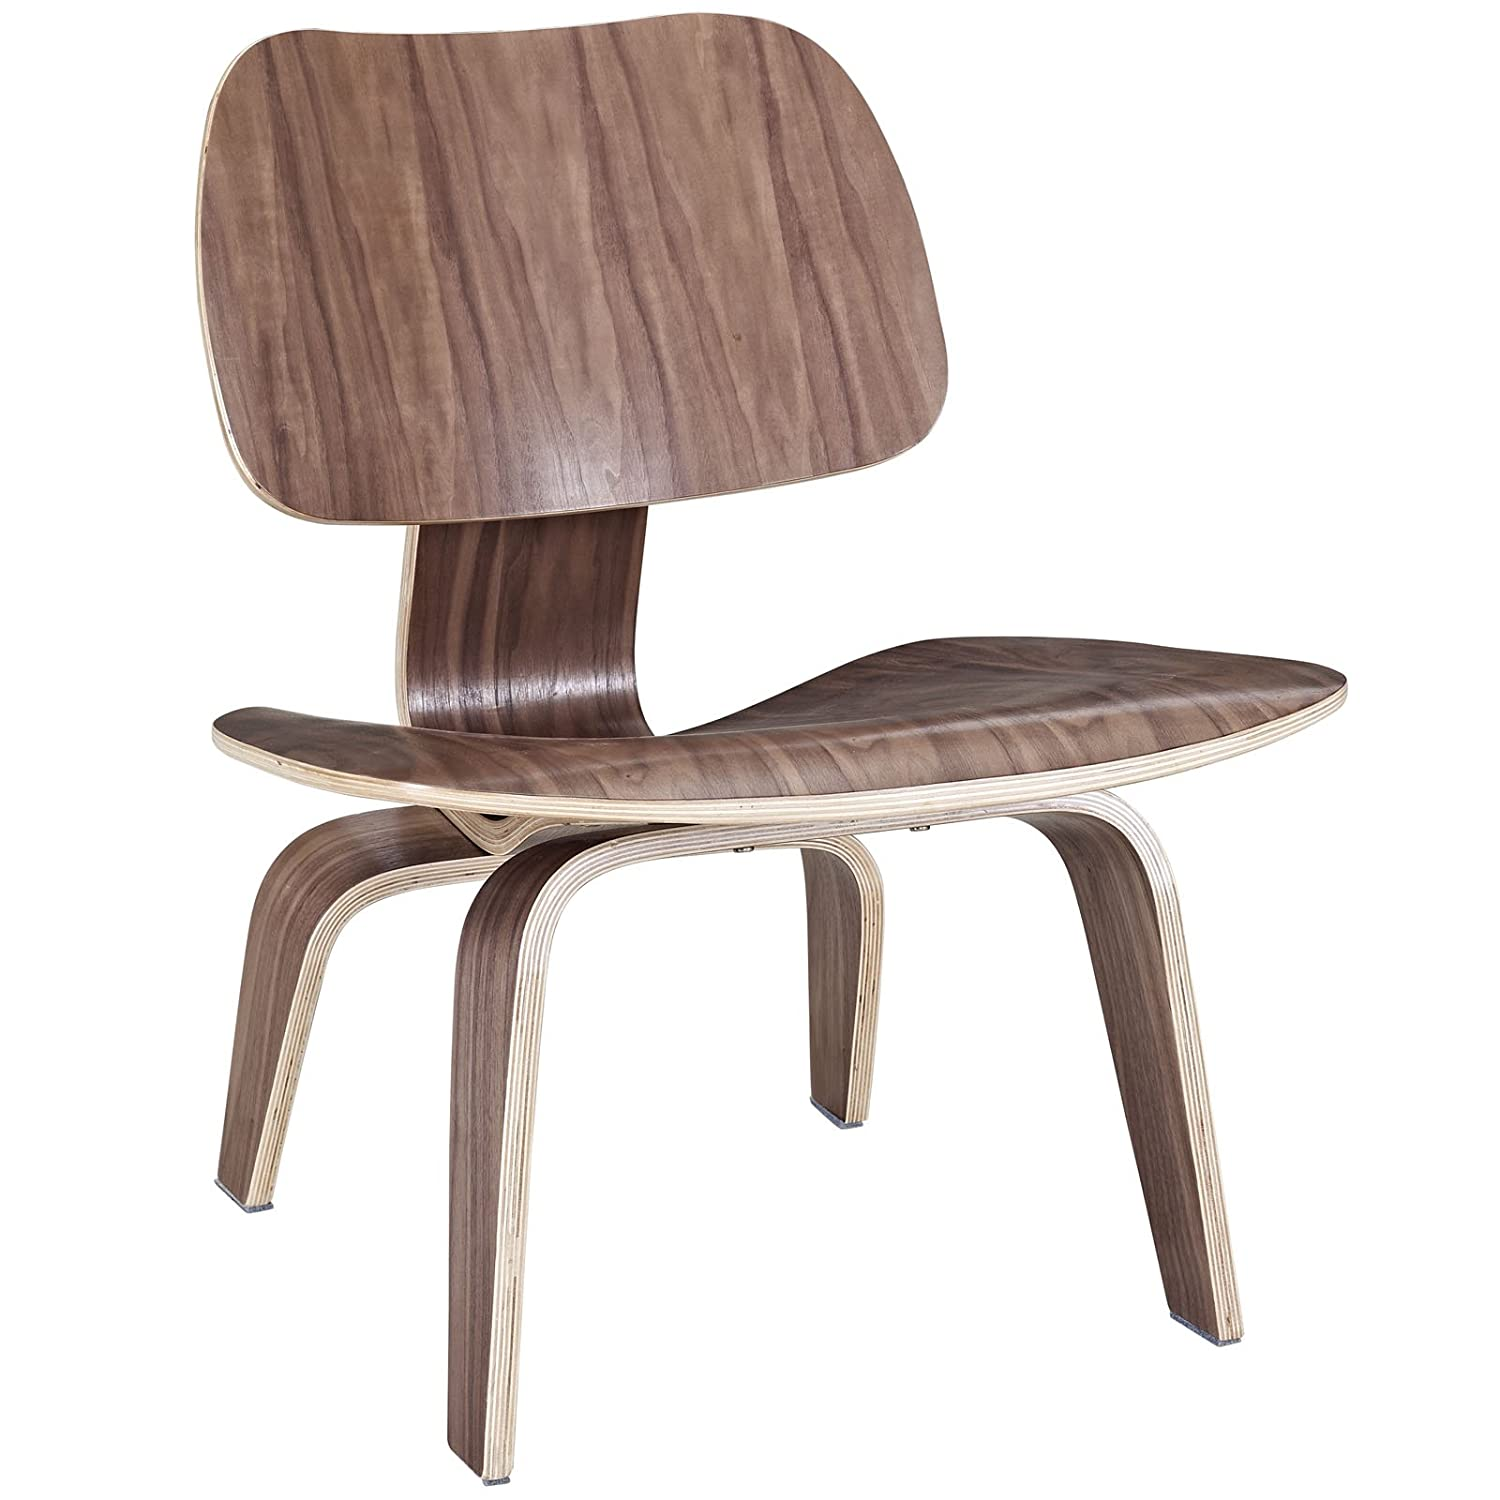 Amazon.com: Modway Fathom Plywood Lounge Chair In Walnut: Kitchen U0026 Dining